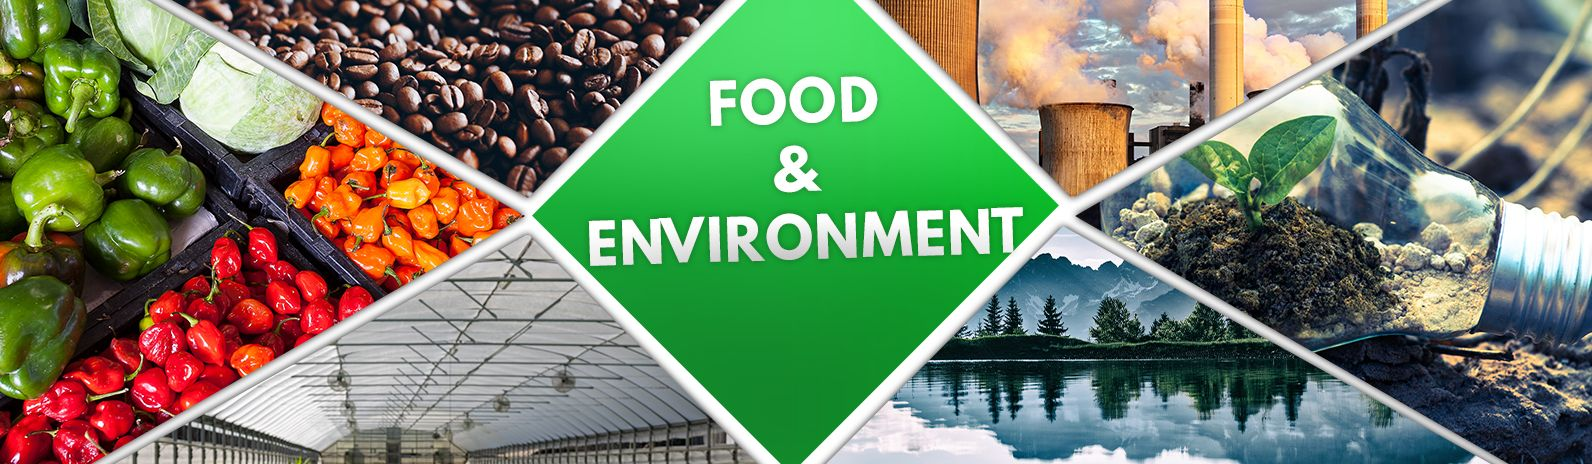 Food and Environment: